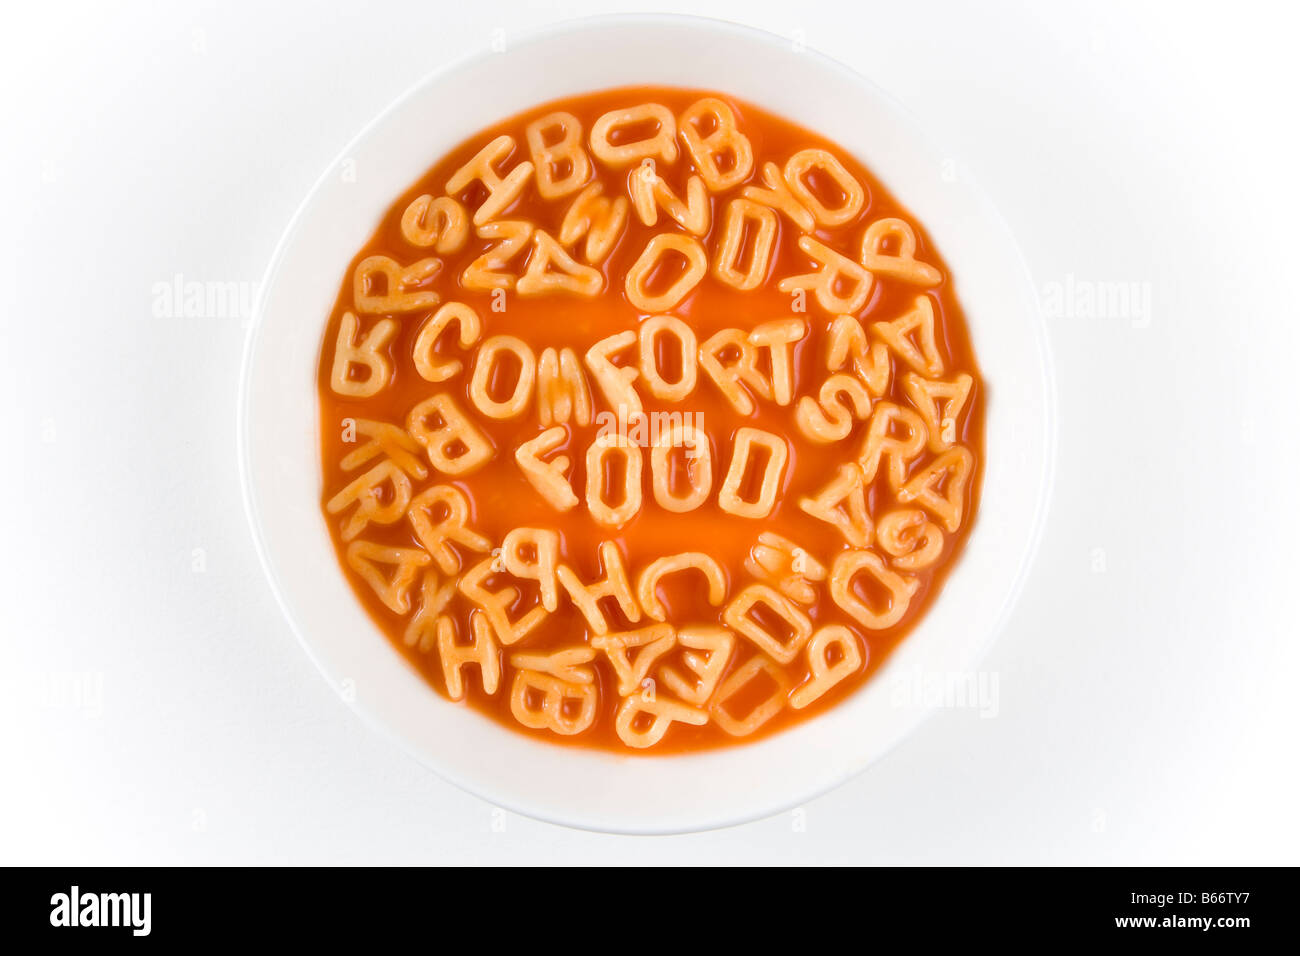 pasta letters spelling food stock photos pasta letters spelling spaghetti letters spelling out the words comfort food in a white bowl stock image